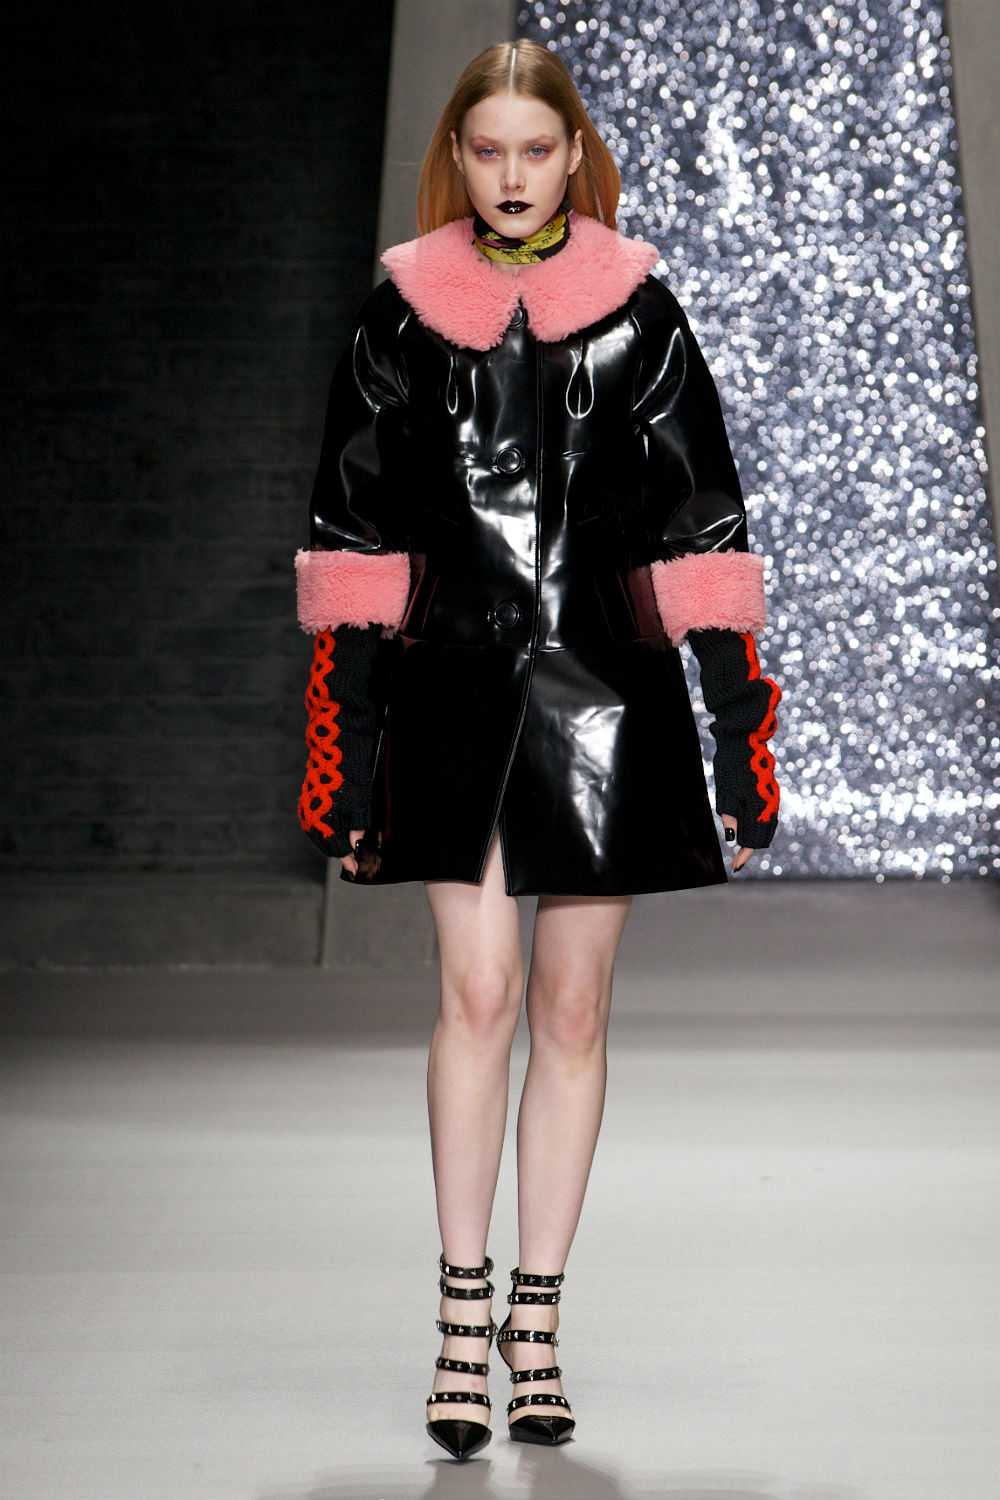 Barbie Meets Blade Runner At Ashley Williams' AW15 Show Barbie Meets Blade Runner At Ashley Williams' AW15 Show new foto